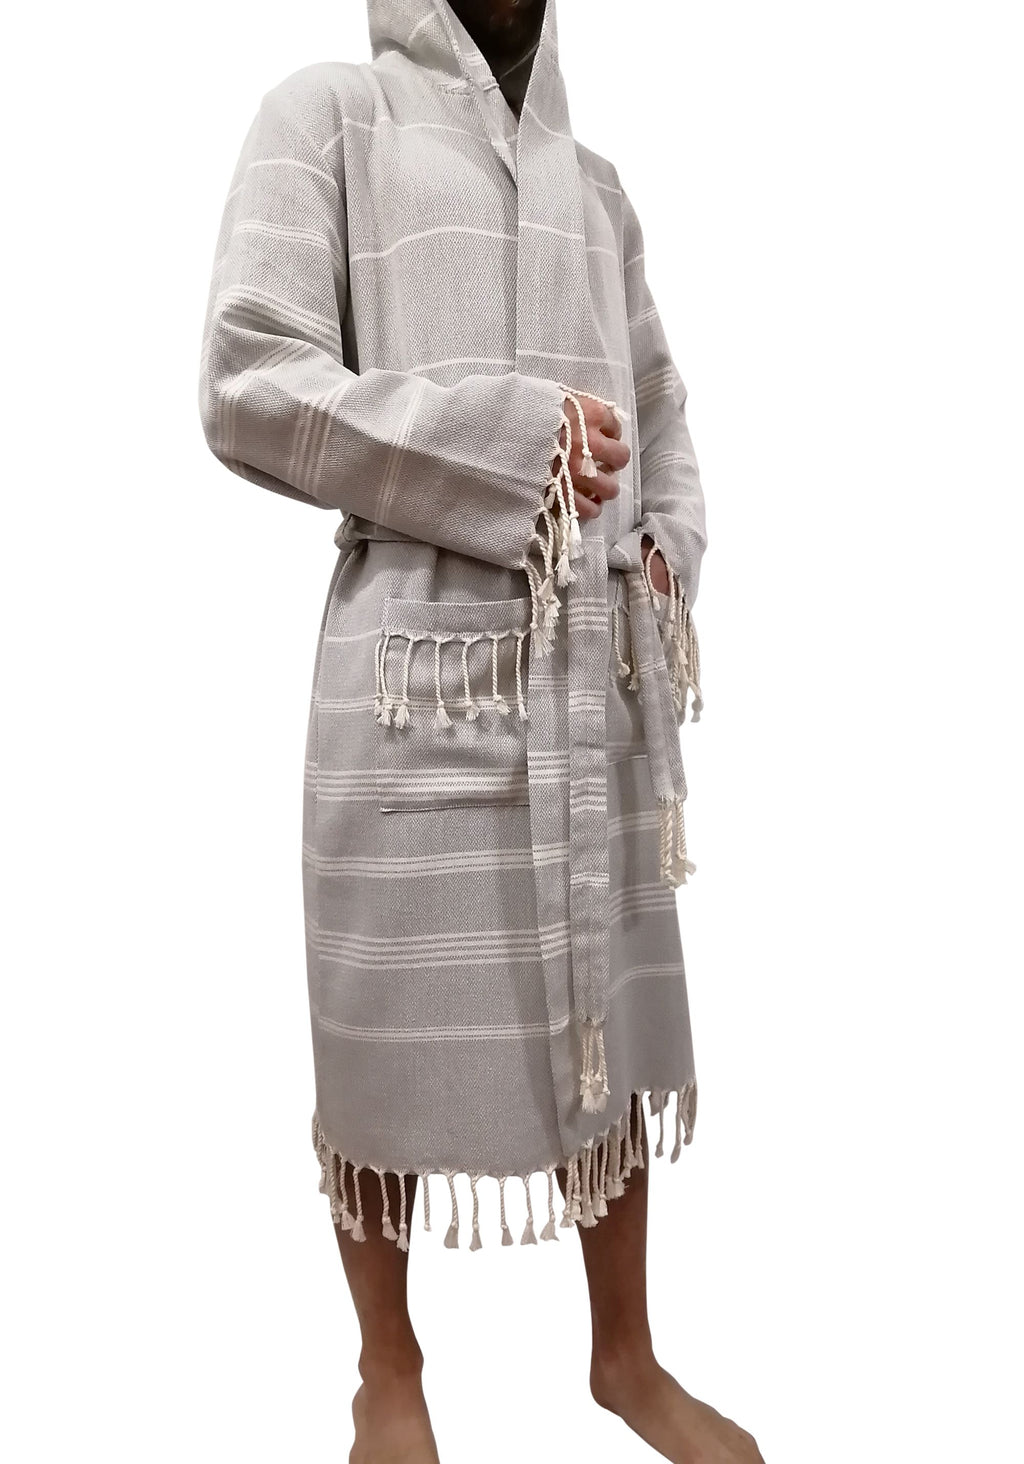 Turkish Towel robe sultan silver made with the finest quality Turkish cotton, super soft, lightweight Turkish towel robes, Perfect for drying off and staying warm, superior absorbency with striped patterns